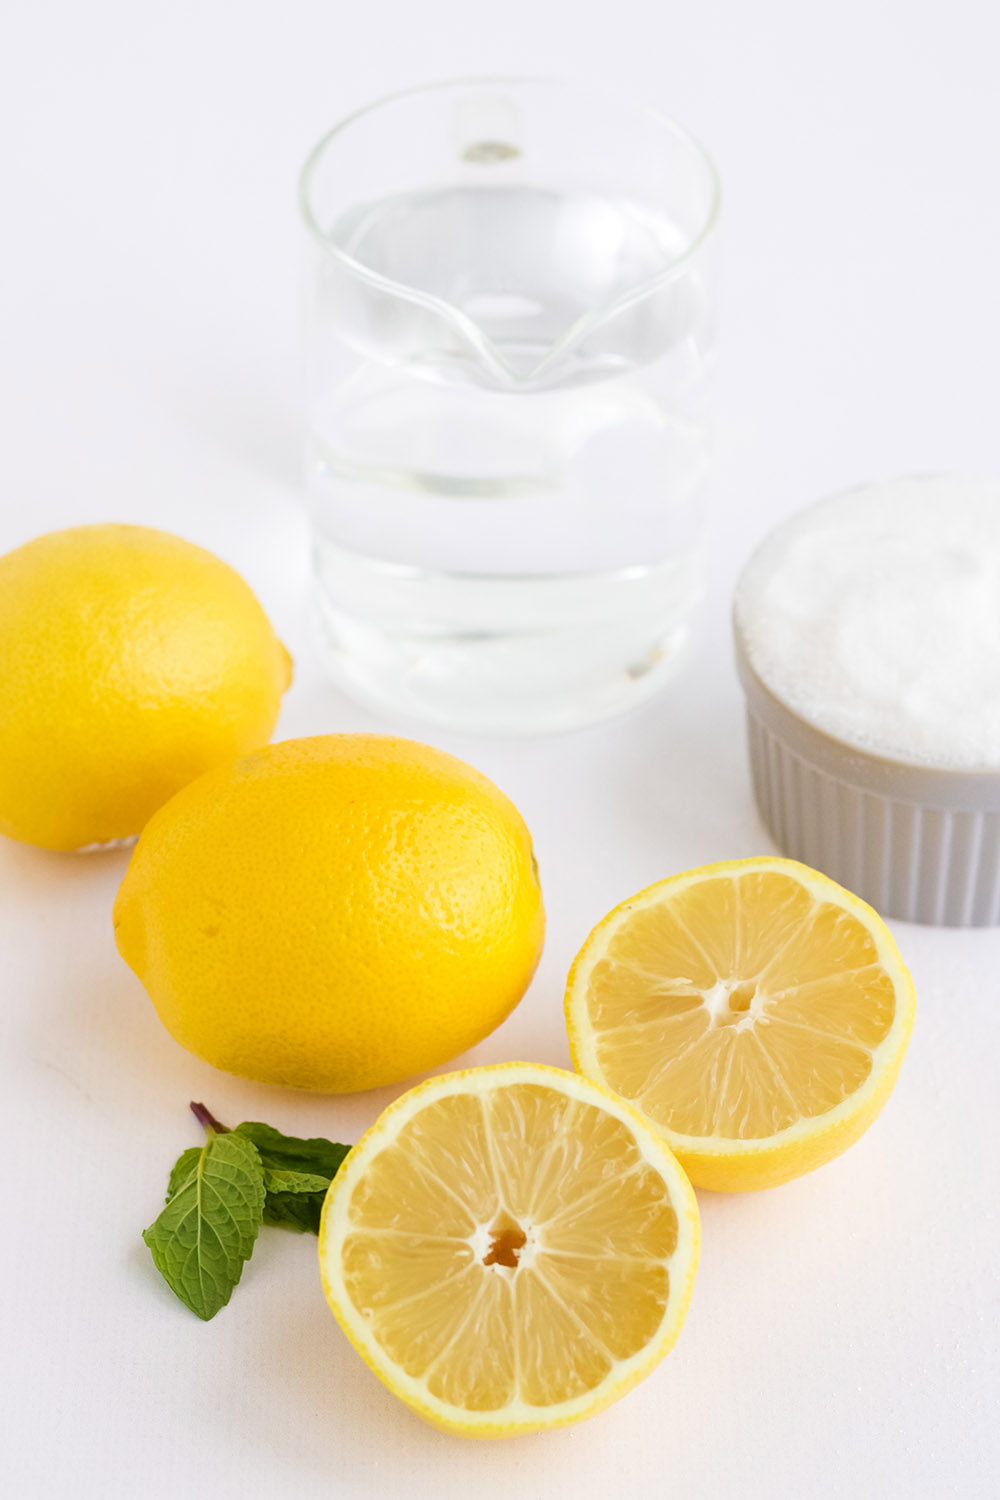 Water, lemons, and sugar on a table.